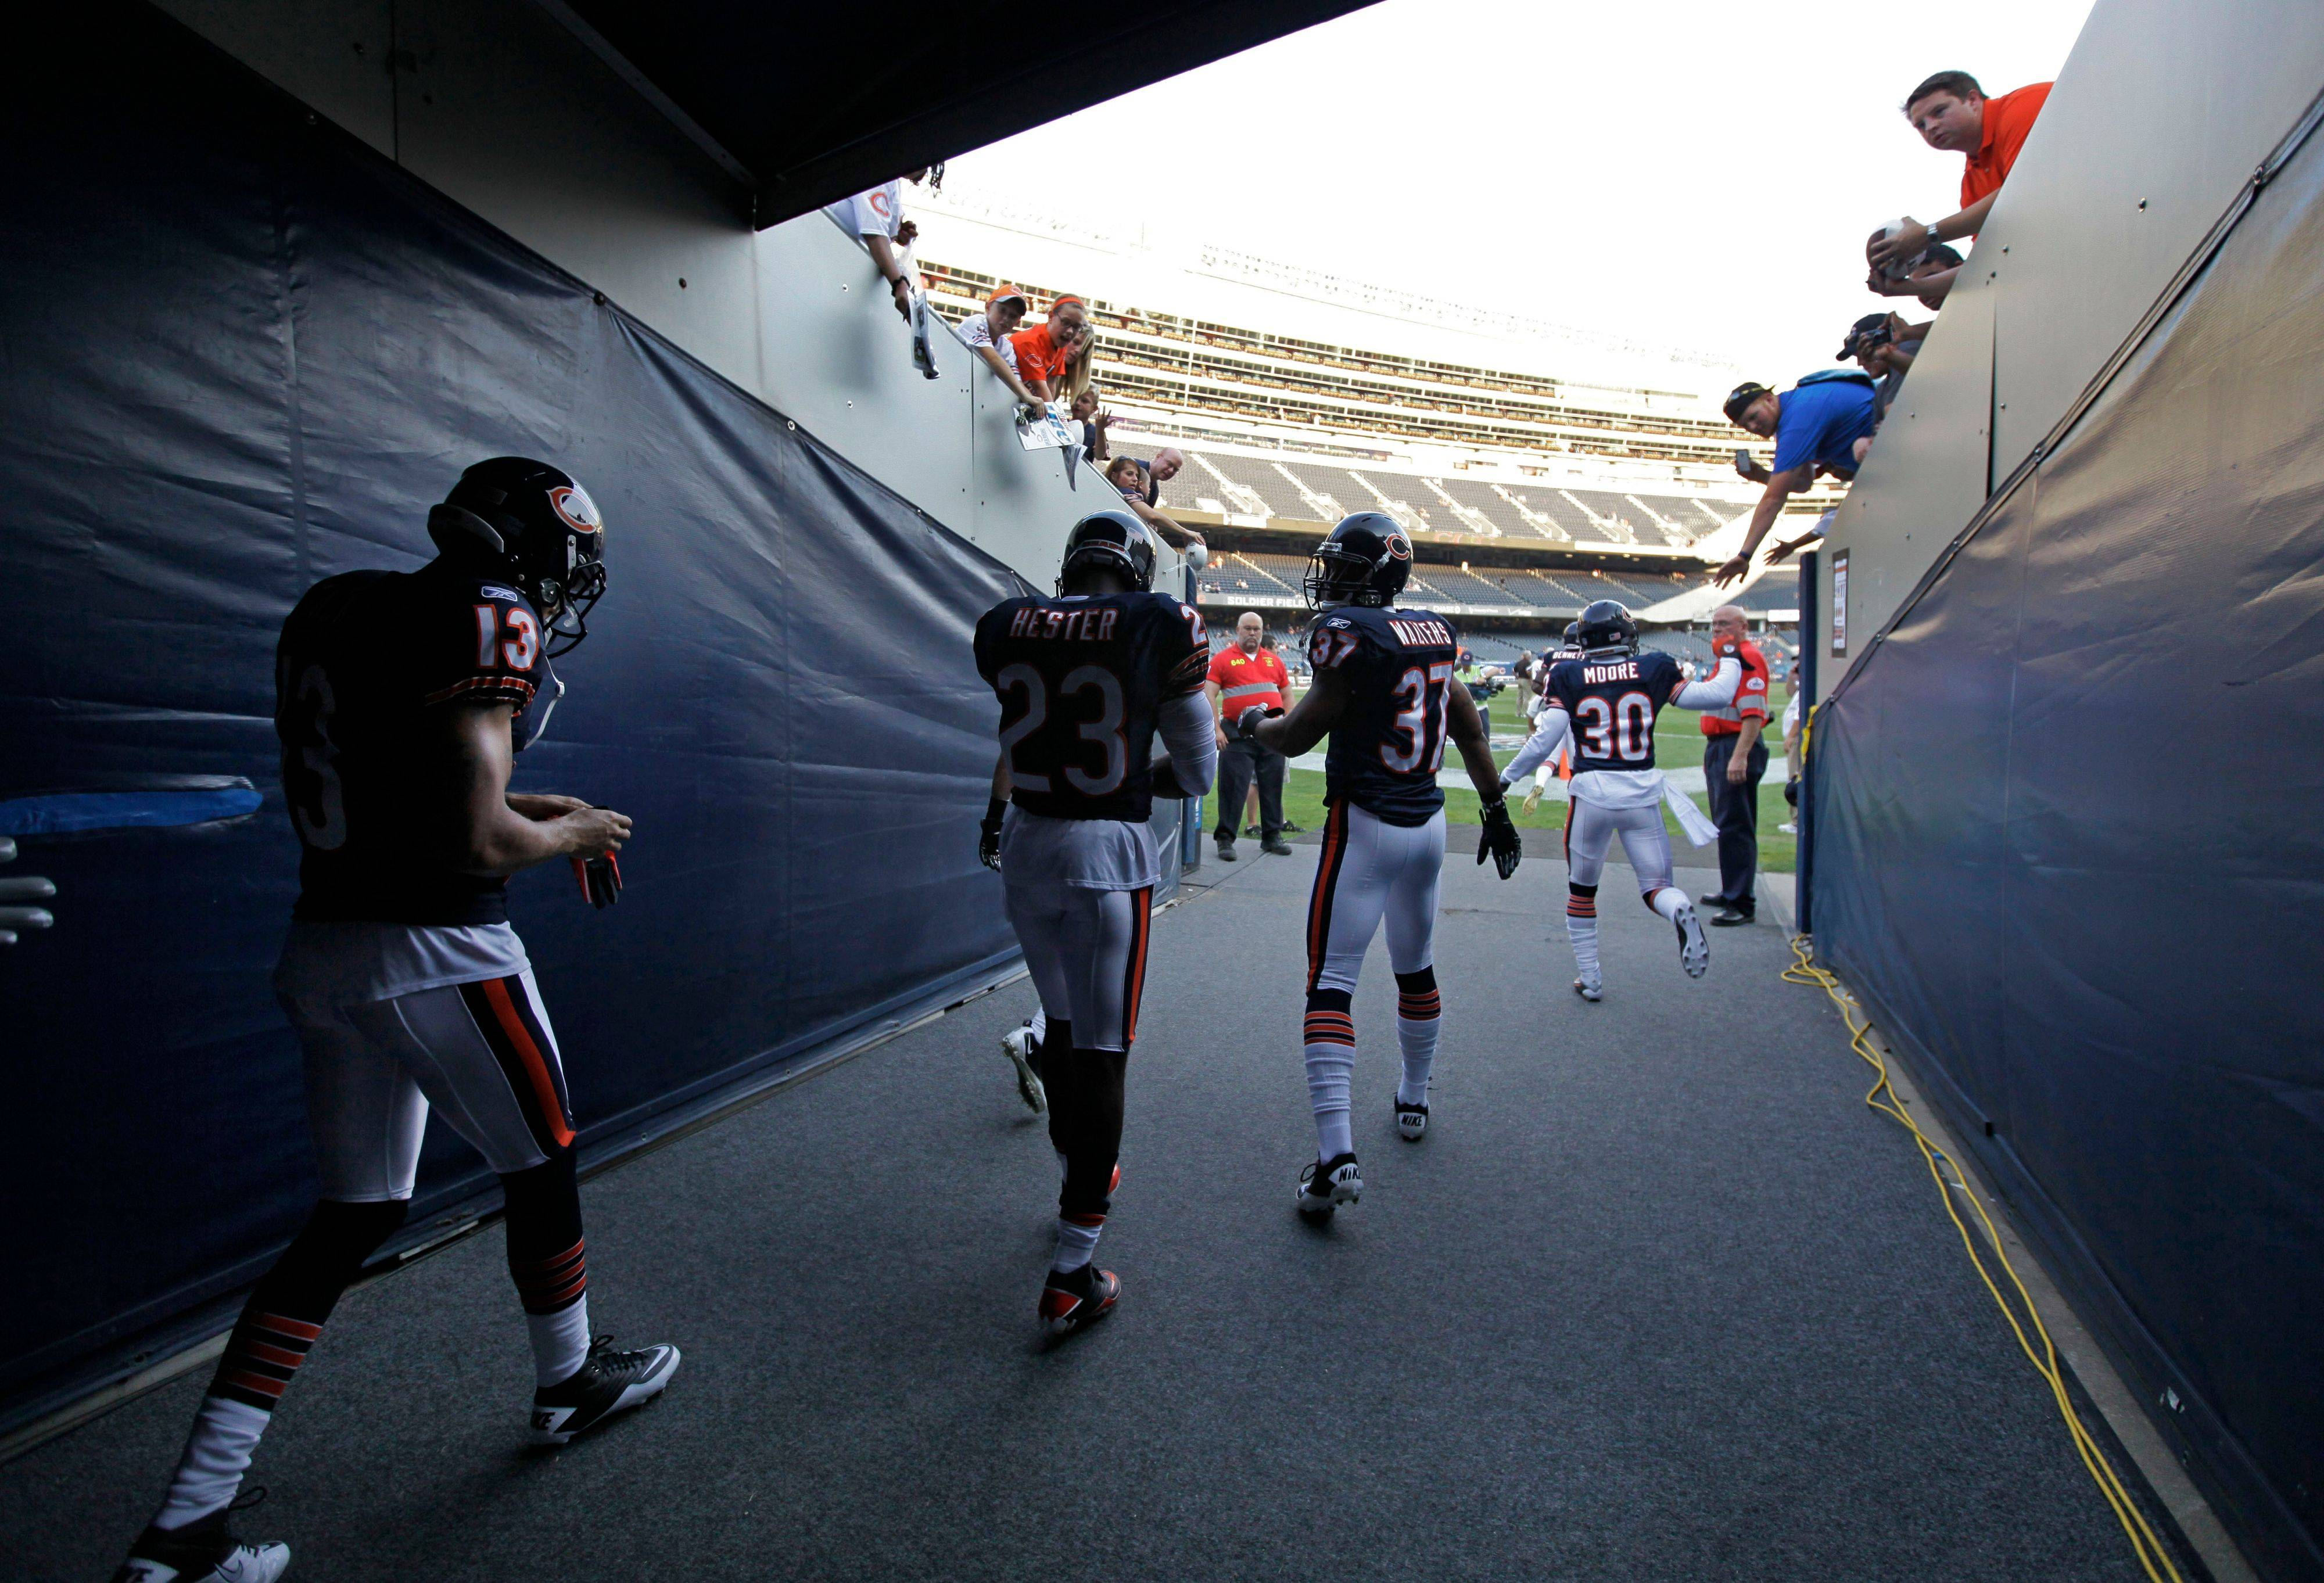 Chicago Bears receivers Johnny Knox, Devin Hester, safety Anthony Walters and cornerback D.J. Moore head to the field for warm-ups.